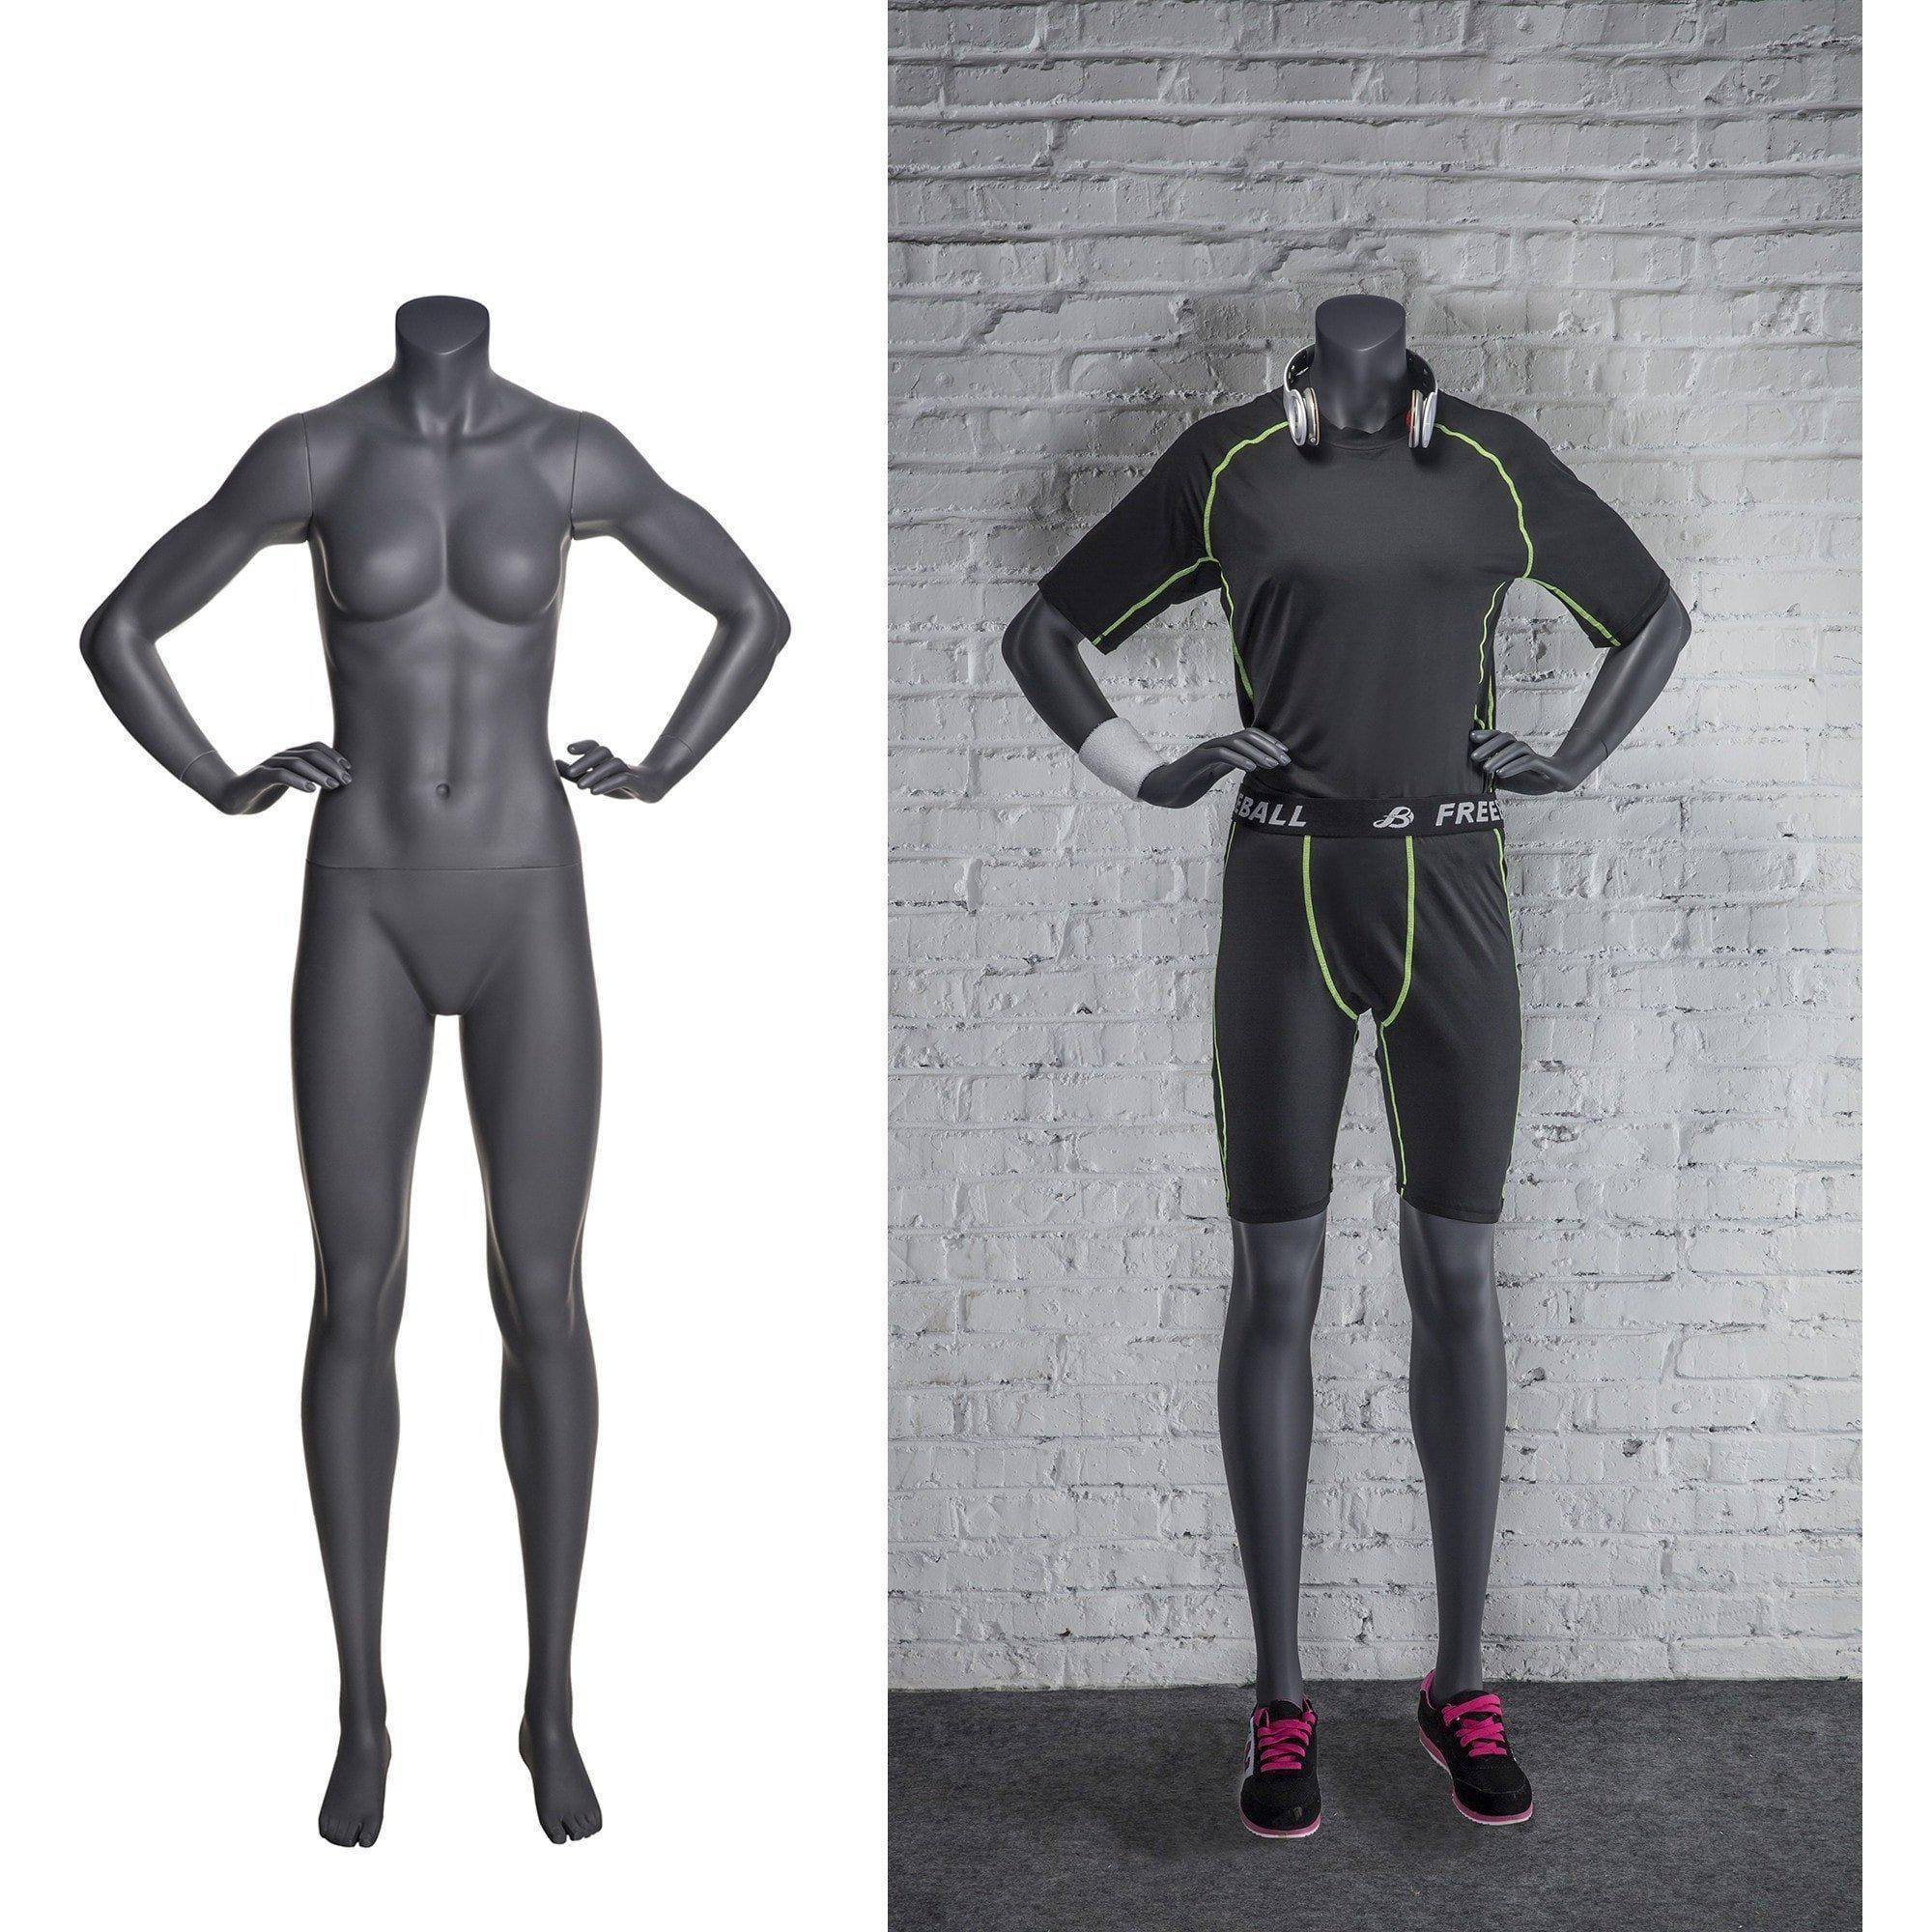 Mannequin Mall Athletic Sports Headless Female Mannequin MM-NI9 For Fashion Stores and Retail Shops